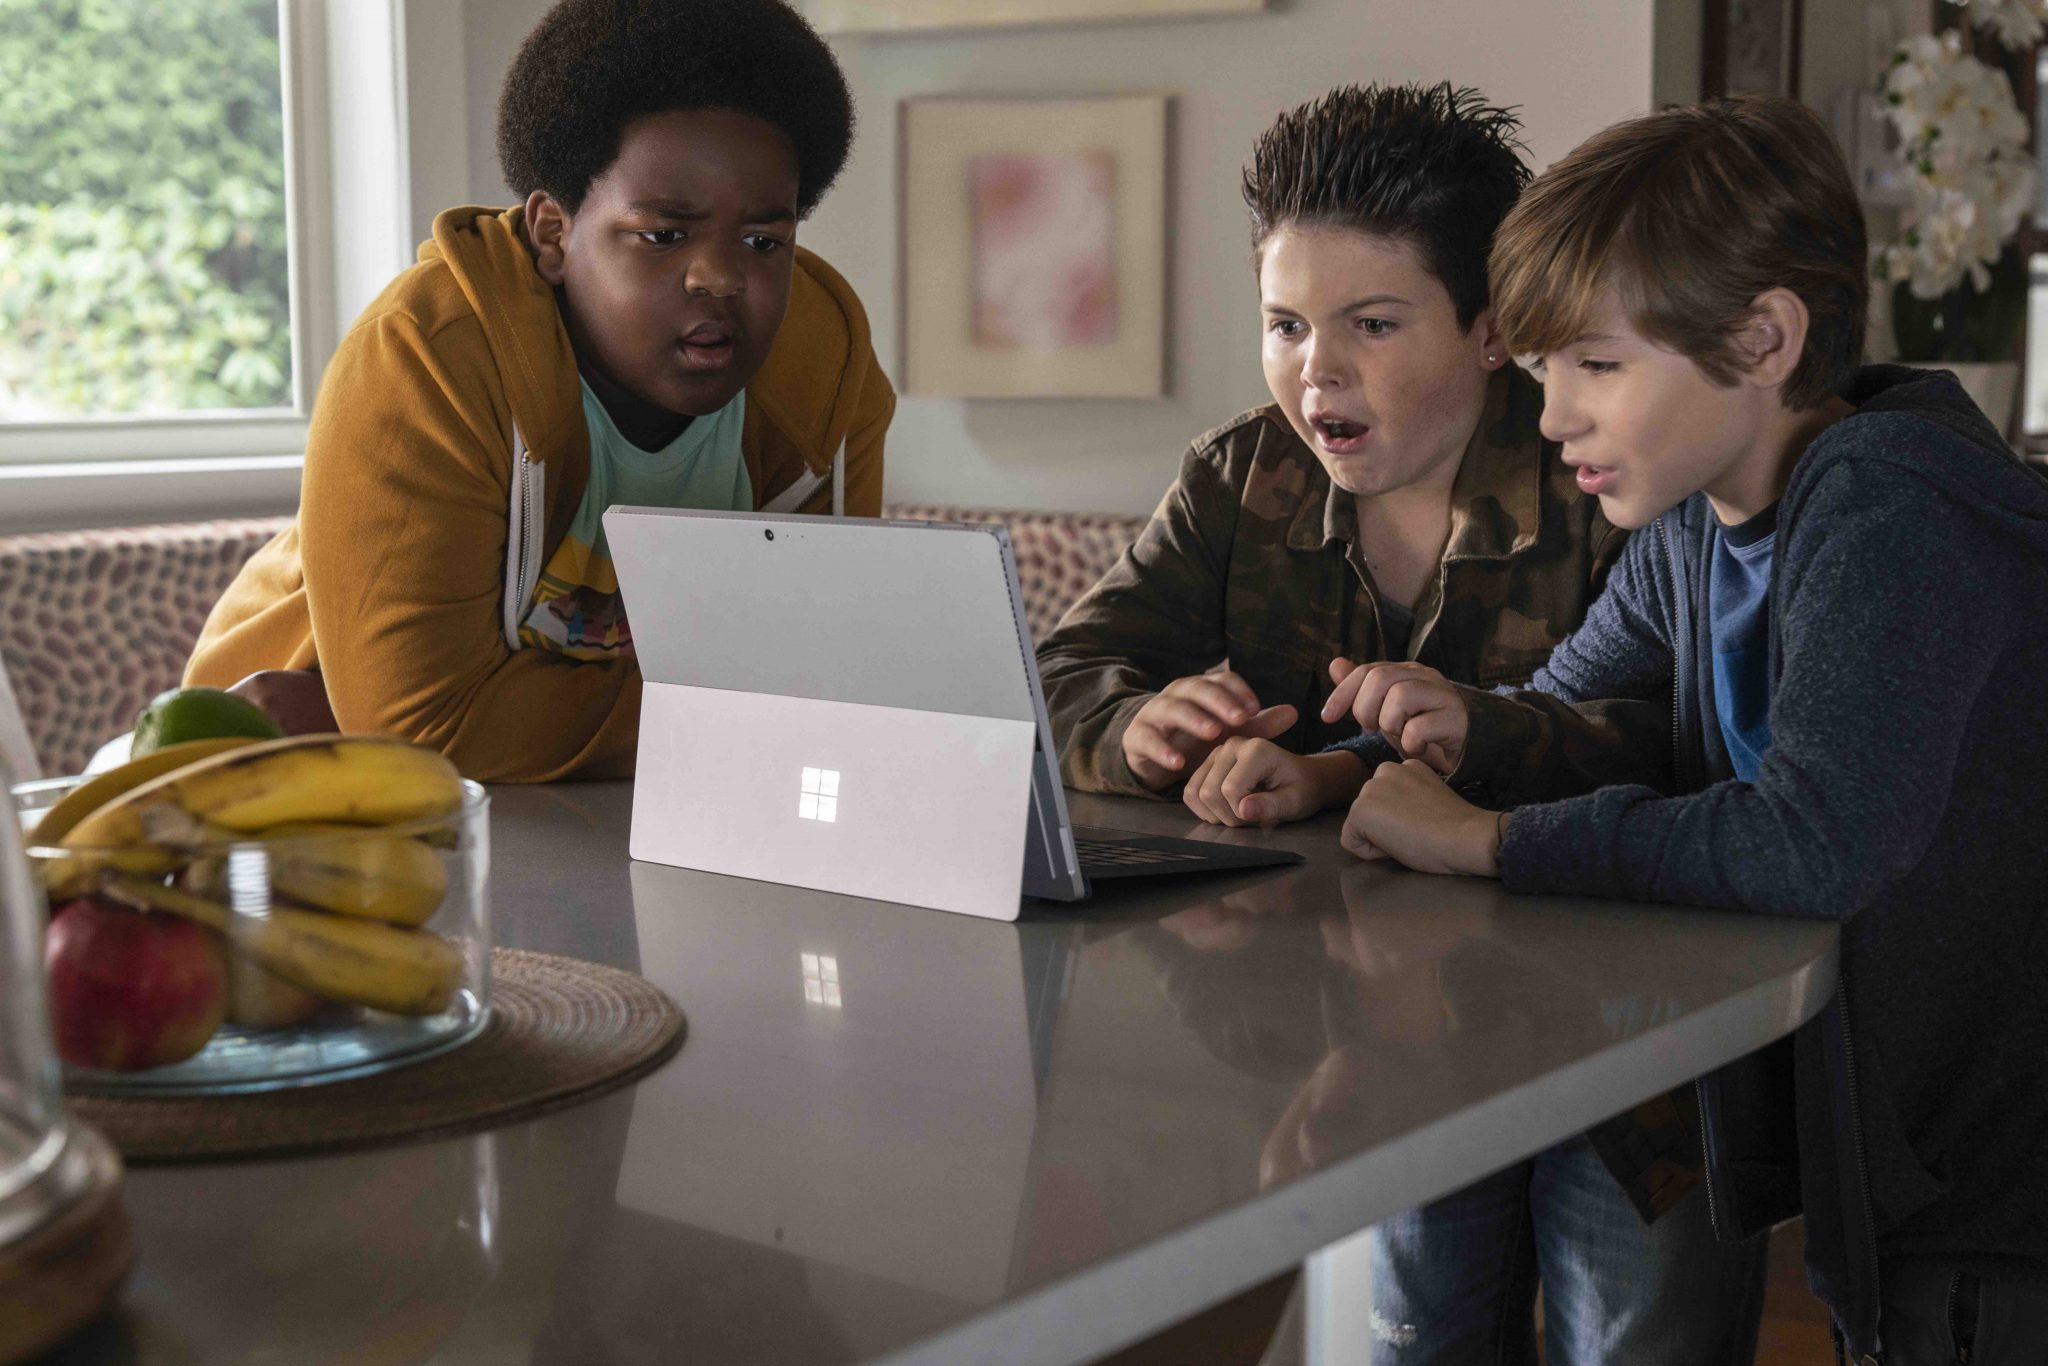 (from left) Lucas (Keith L. Williams), Thor (Brady Noon) and Max (Jacob Tremblay) in Good Boys, written by Lee Eisenberg and Gene Stupnitsky and directed by Stupnitsky.